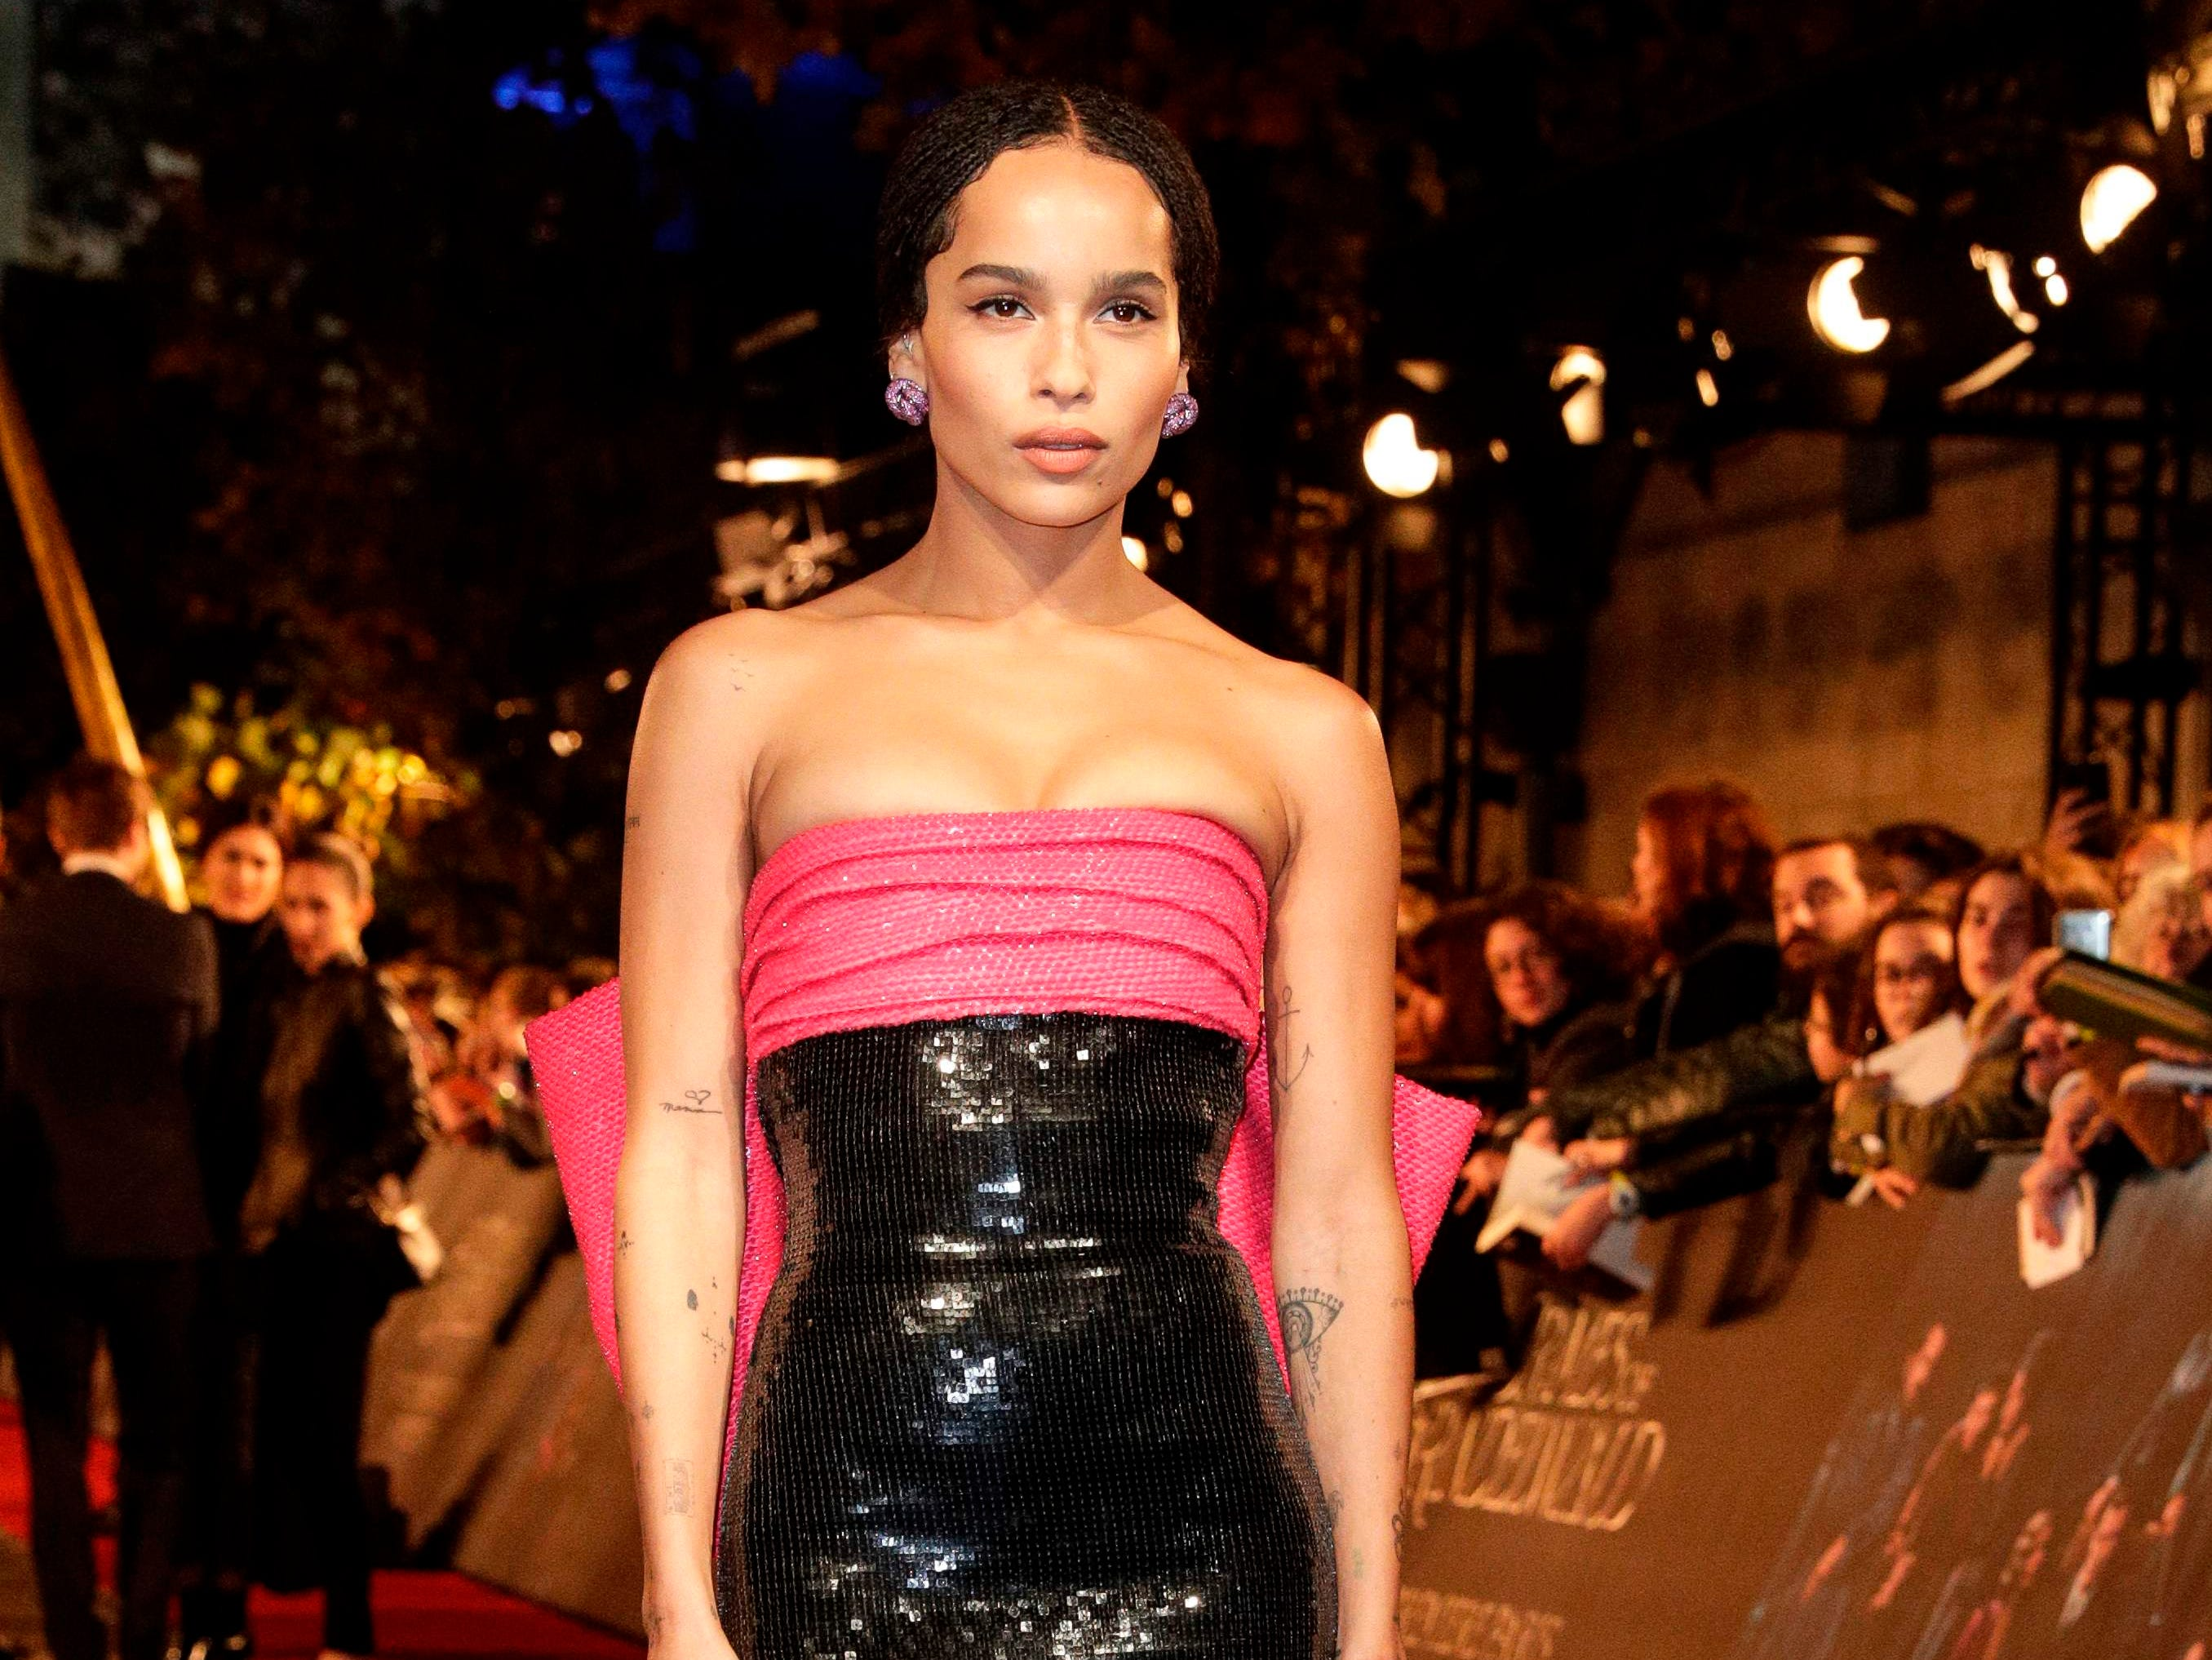 US actress and singer Zoe Kravitz, the daughter of musician Lenny Kravitz, poses for photographers as she arrives for the premier of the fantasy film 'Fantastic Beasts: The Crimes of Grindelwald' in Paris on November 8, 2018. (Photo by Geoffroy VAN DER HASSELT / AFP)GEOFFROY VAN DER HASSELT/AFP/Getty Images ORIG FILE ID: AFP_1AO867